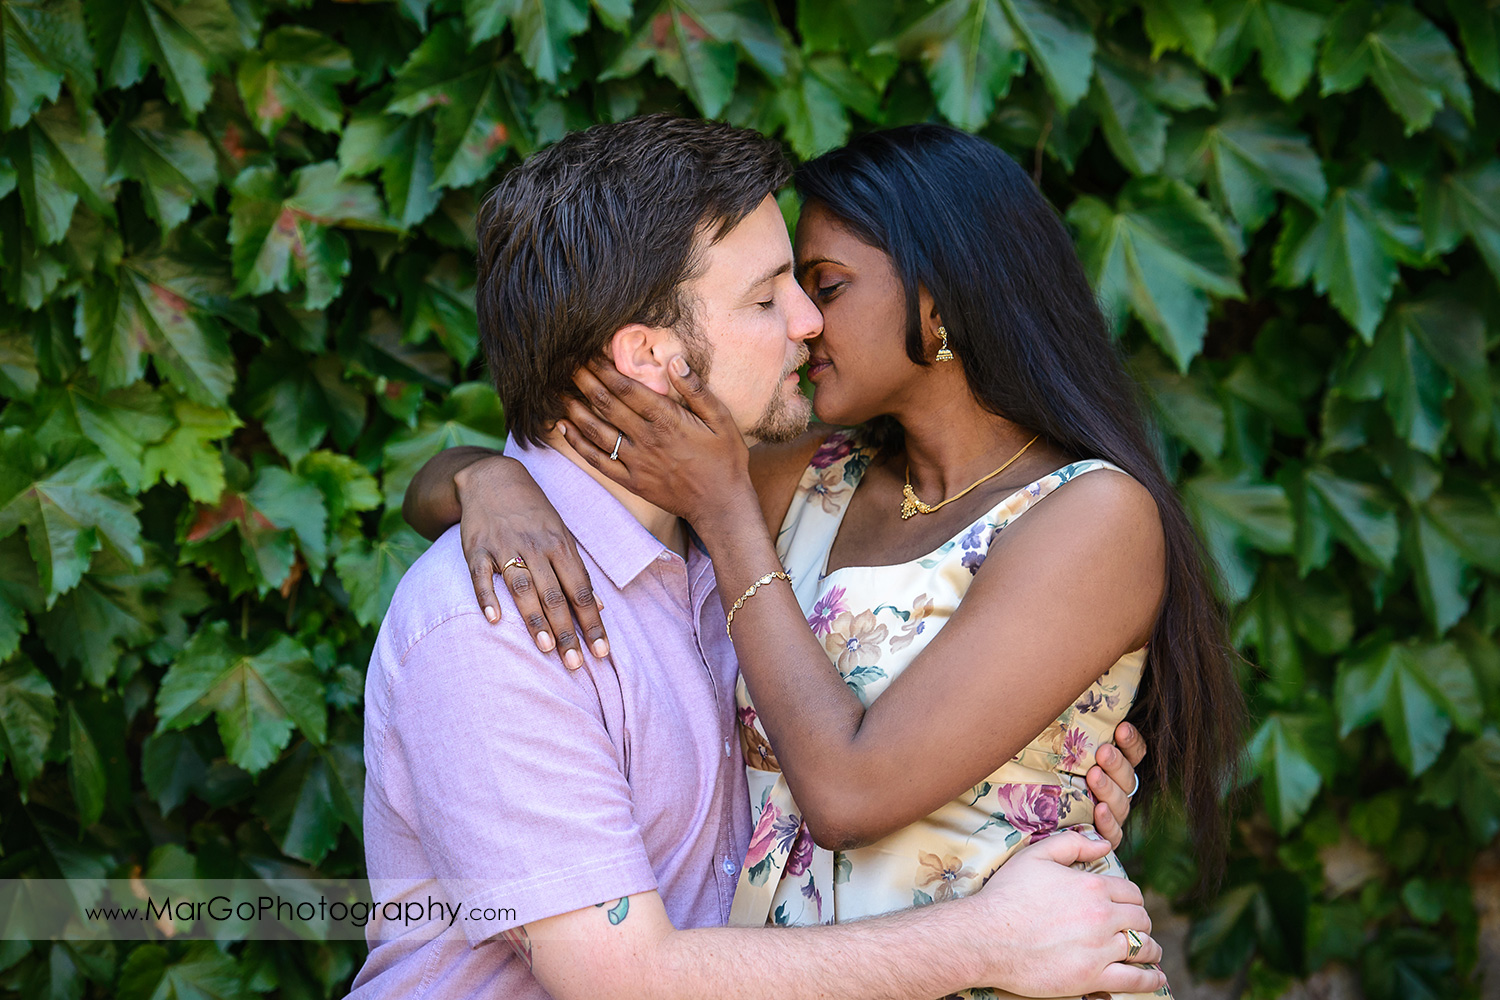 man in pink shirt and Indian woman in flower dress kissing on green background during engagement session at Castello di Amorosa in Calistoga